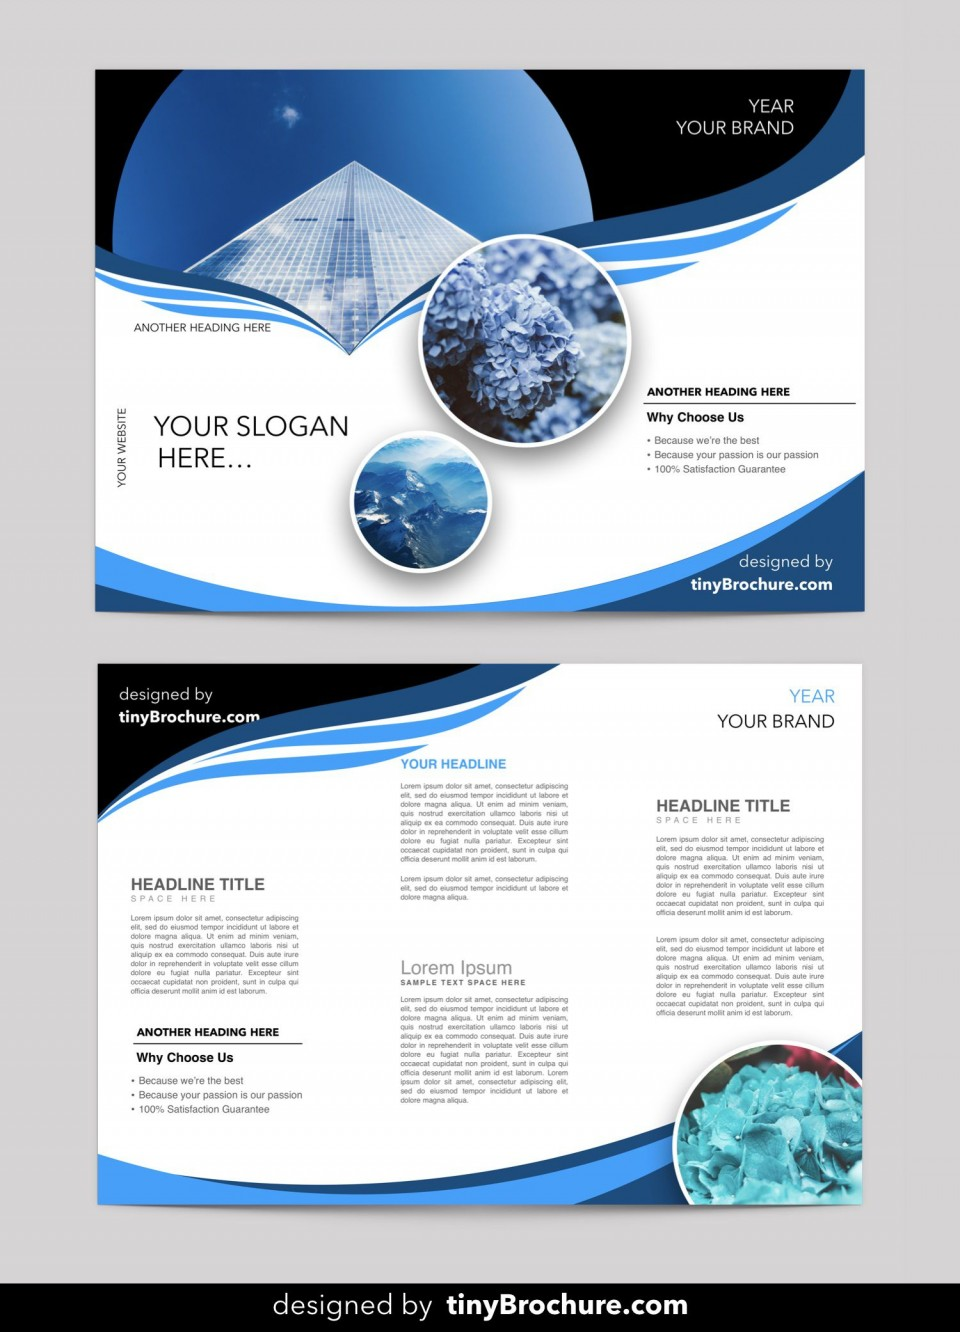 003 Phenomenal Busines Flyer Template Free Download Concept  Photoshop Training Design960